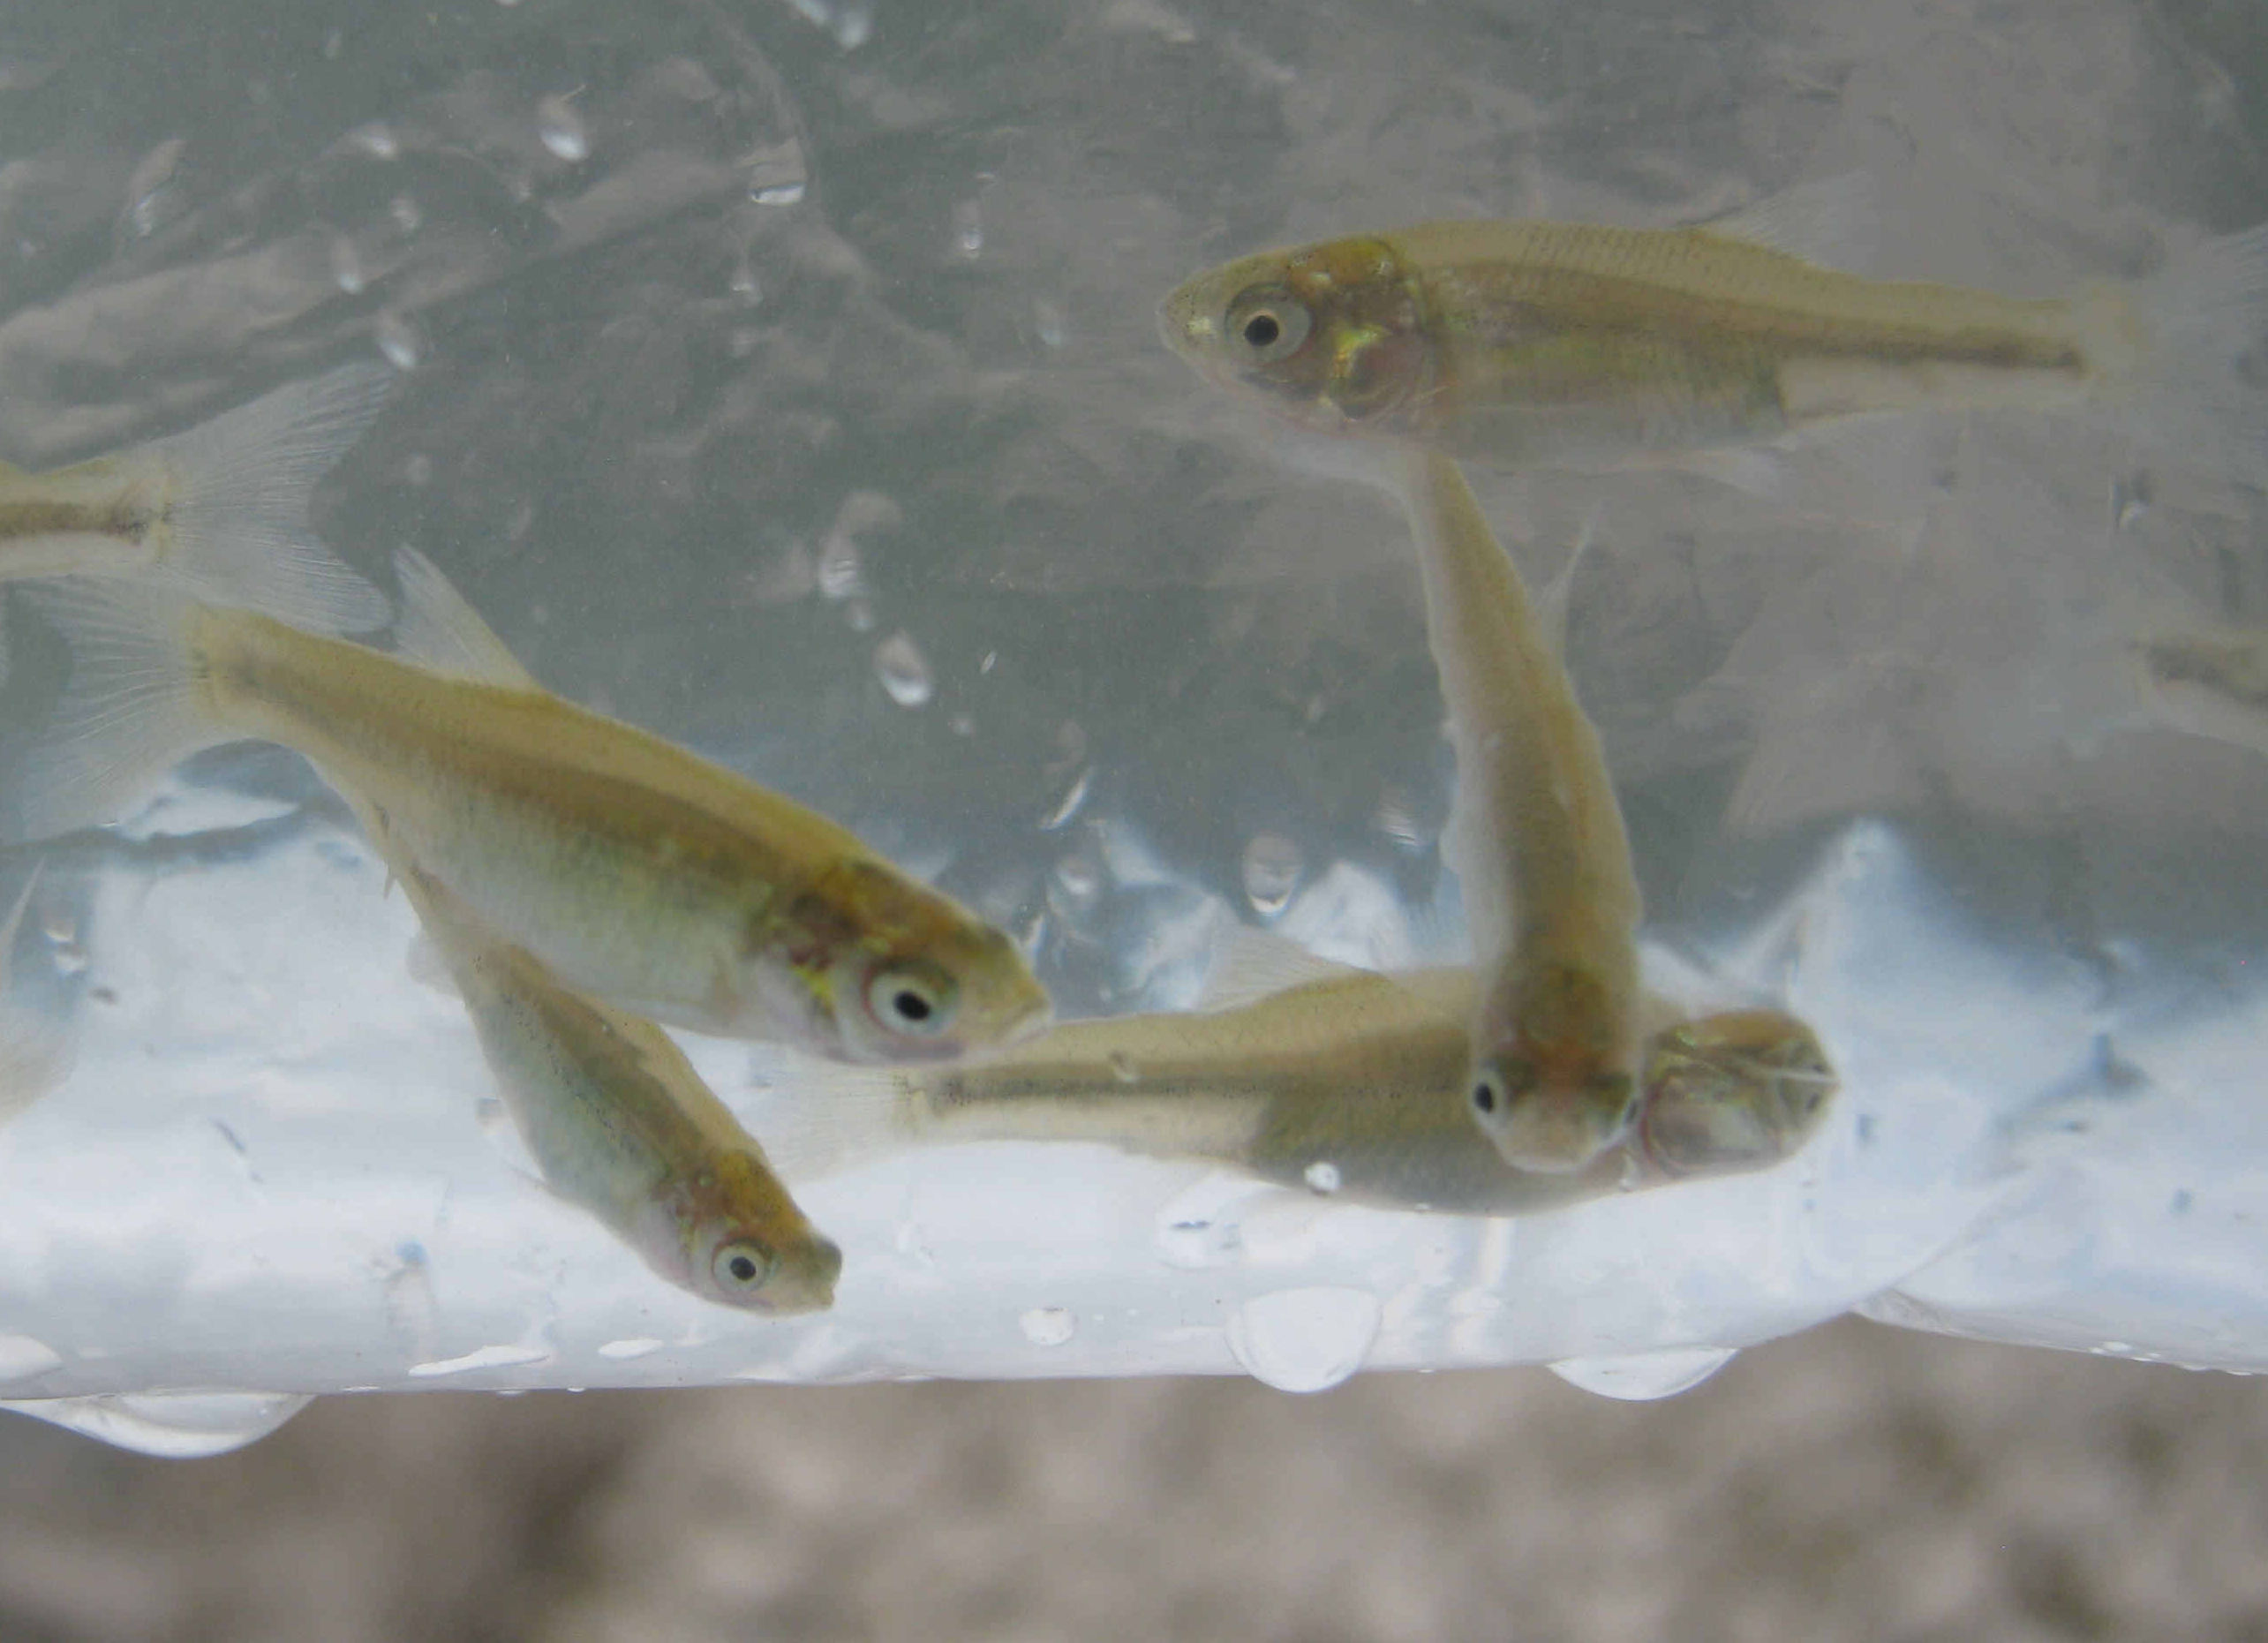 Fhm sanity check other fish species pond boss forum for Pond fish identification